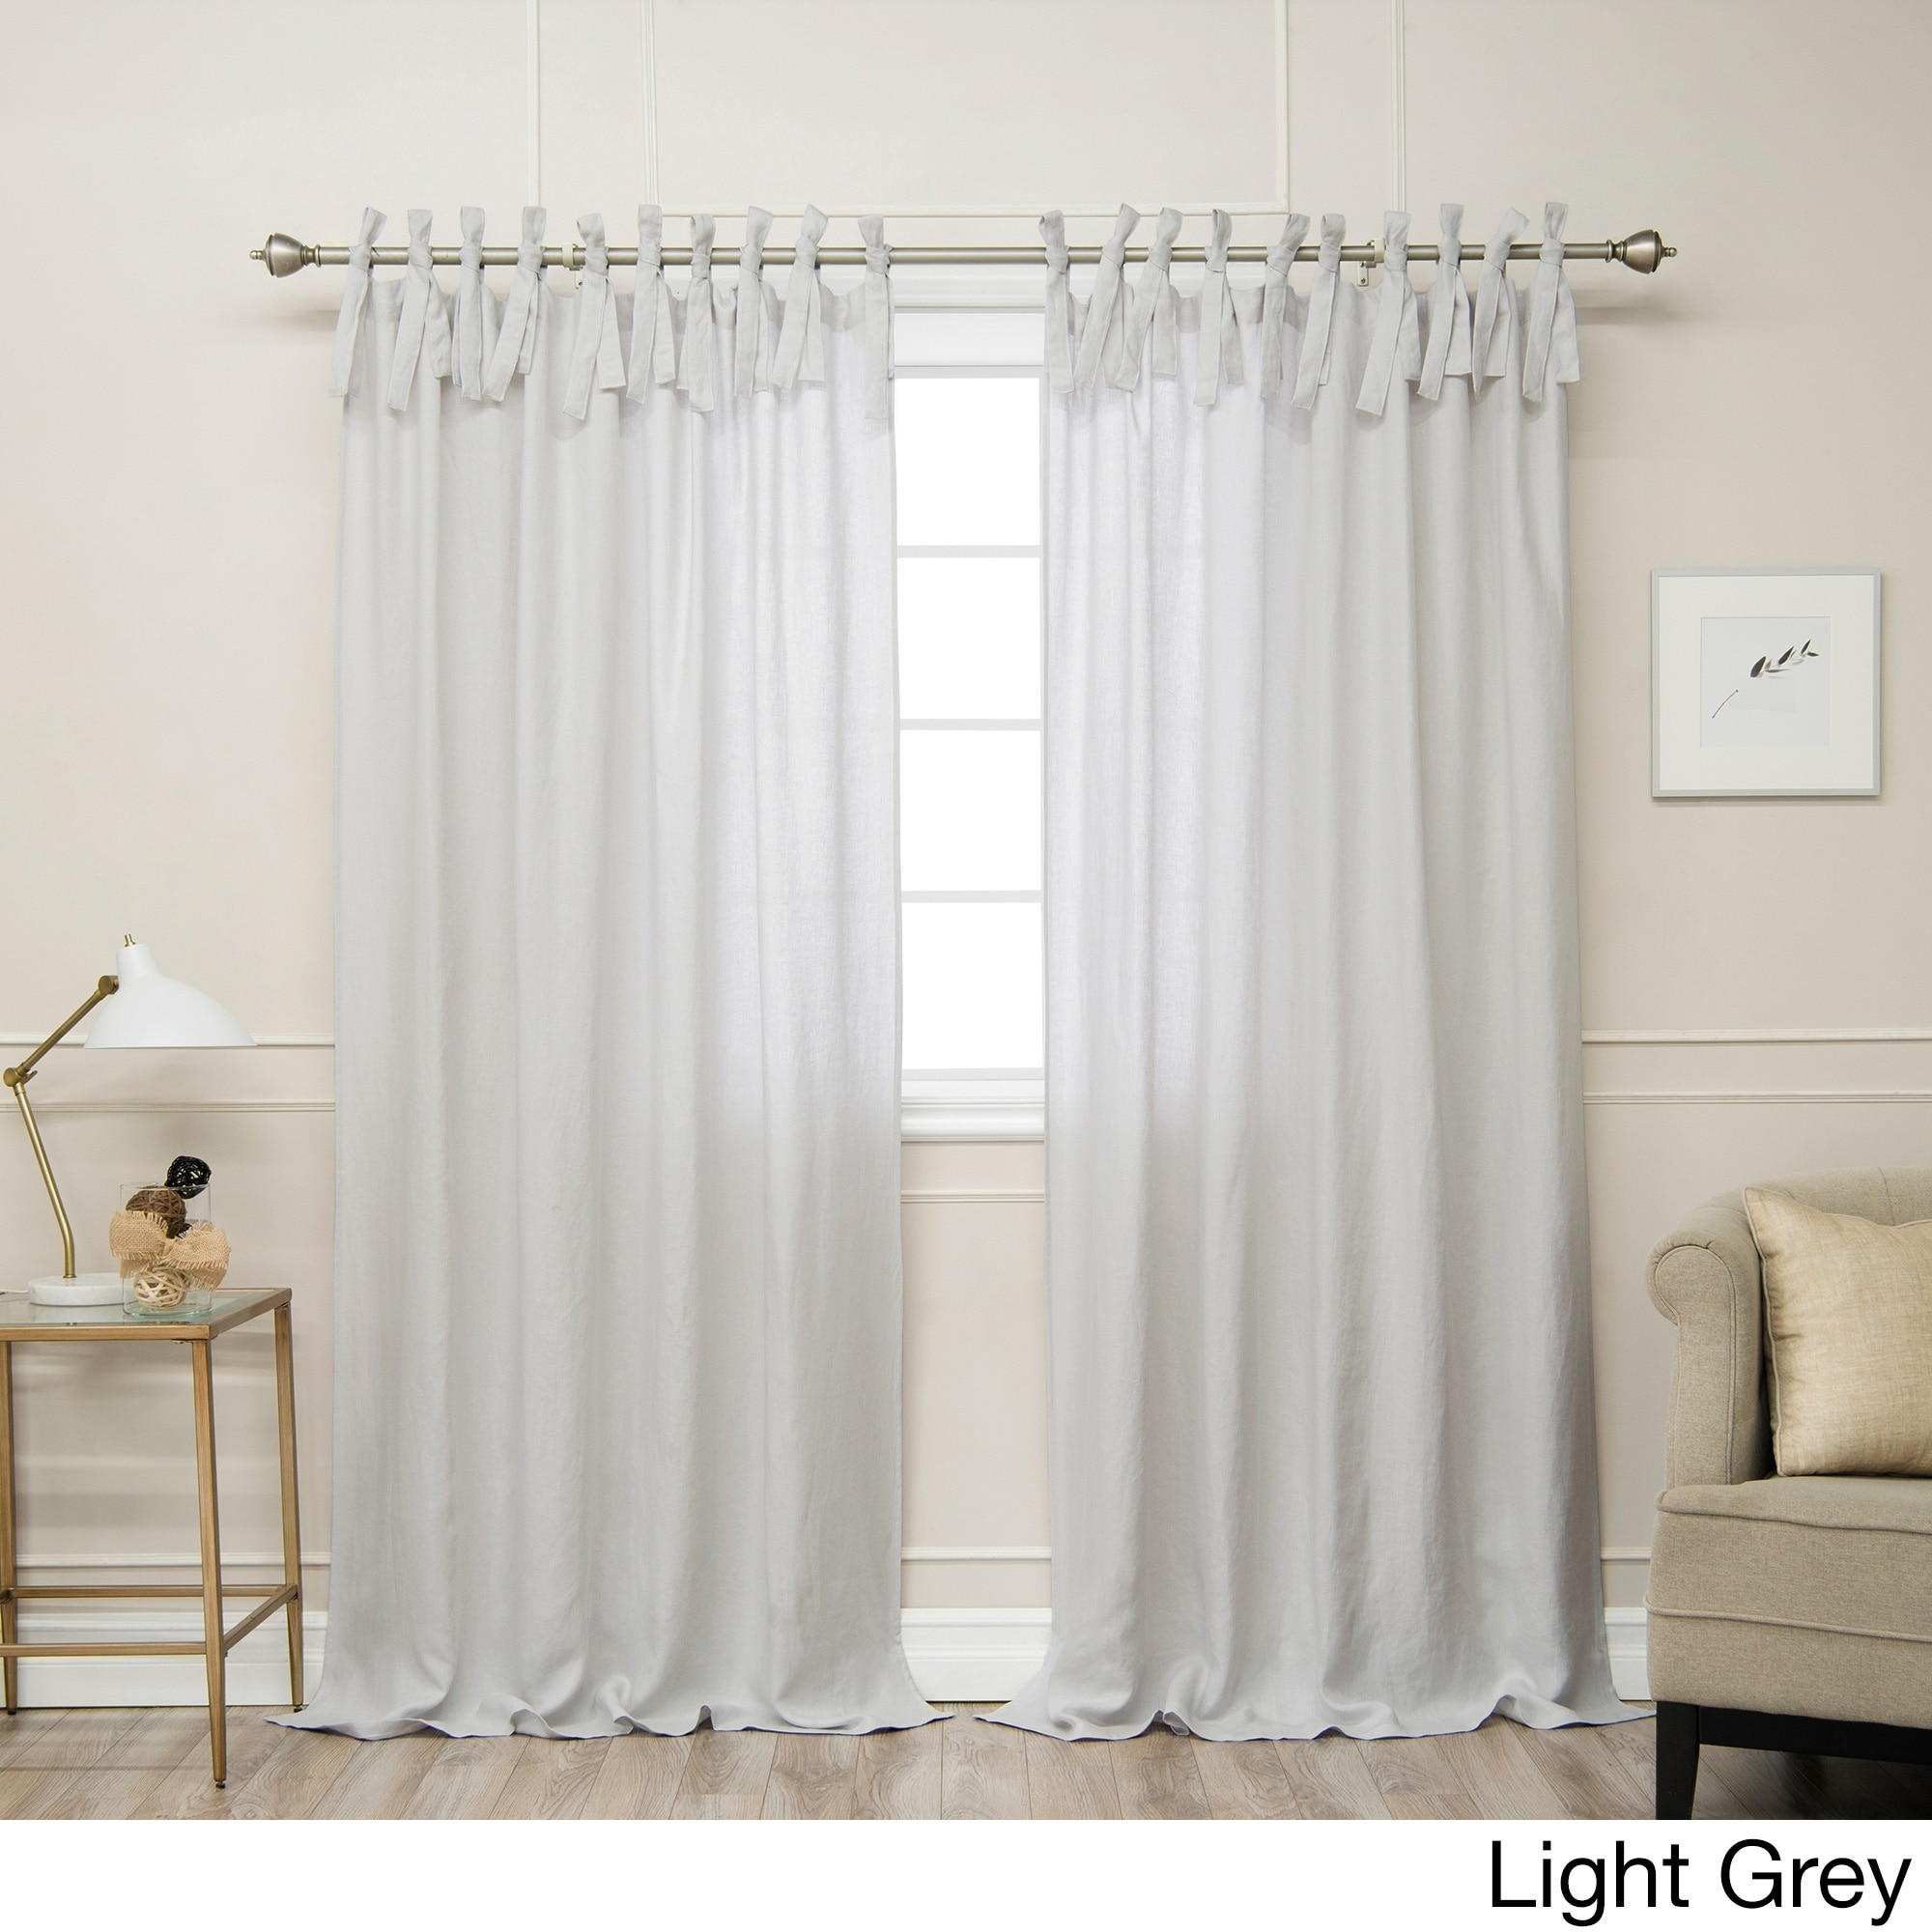 sheer lace polyester best design curtain linen of curtains scroll f inches and popular gray white size full panel custom beige jacqueline light